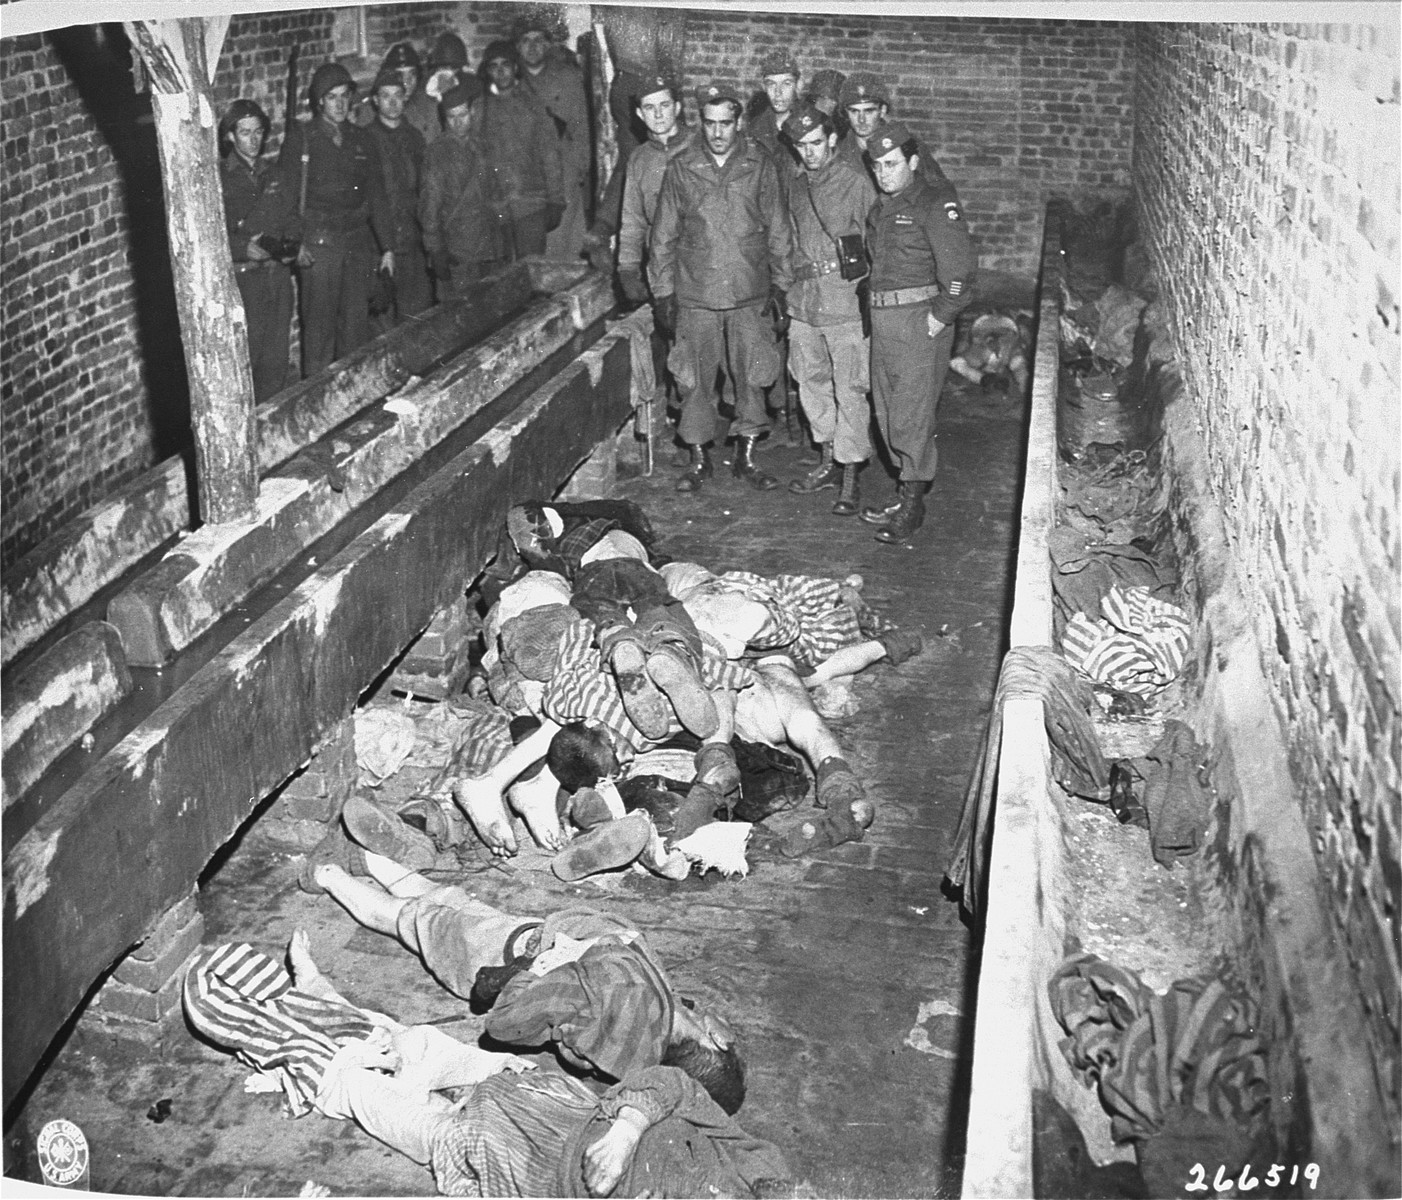 American troops look at prisoners' bodies found in a latrine in the Woebbelin concentration camp.